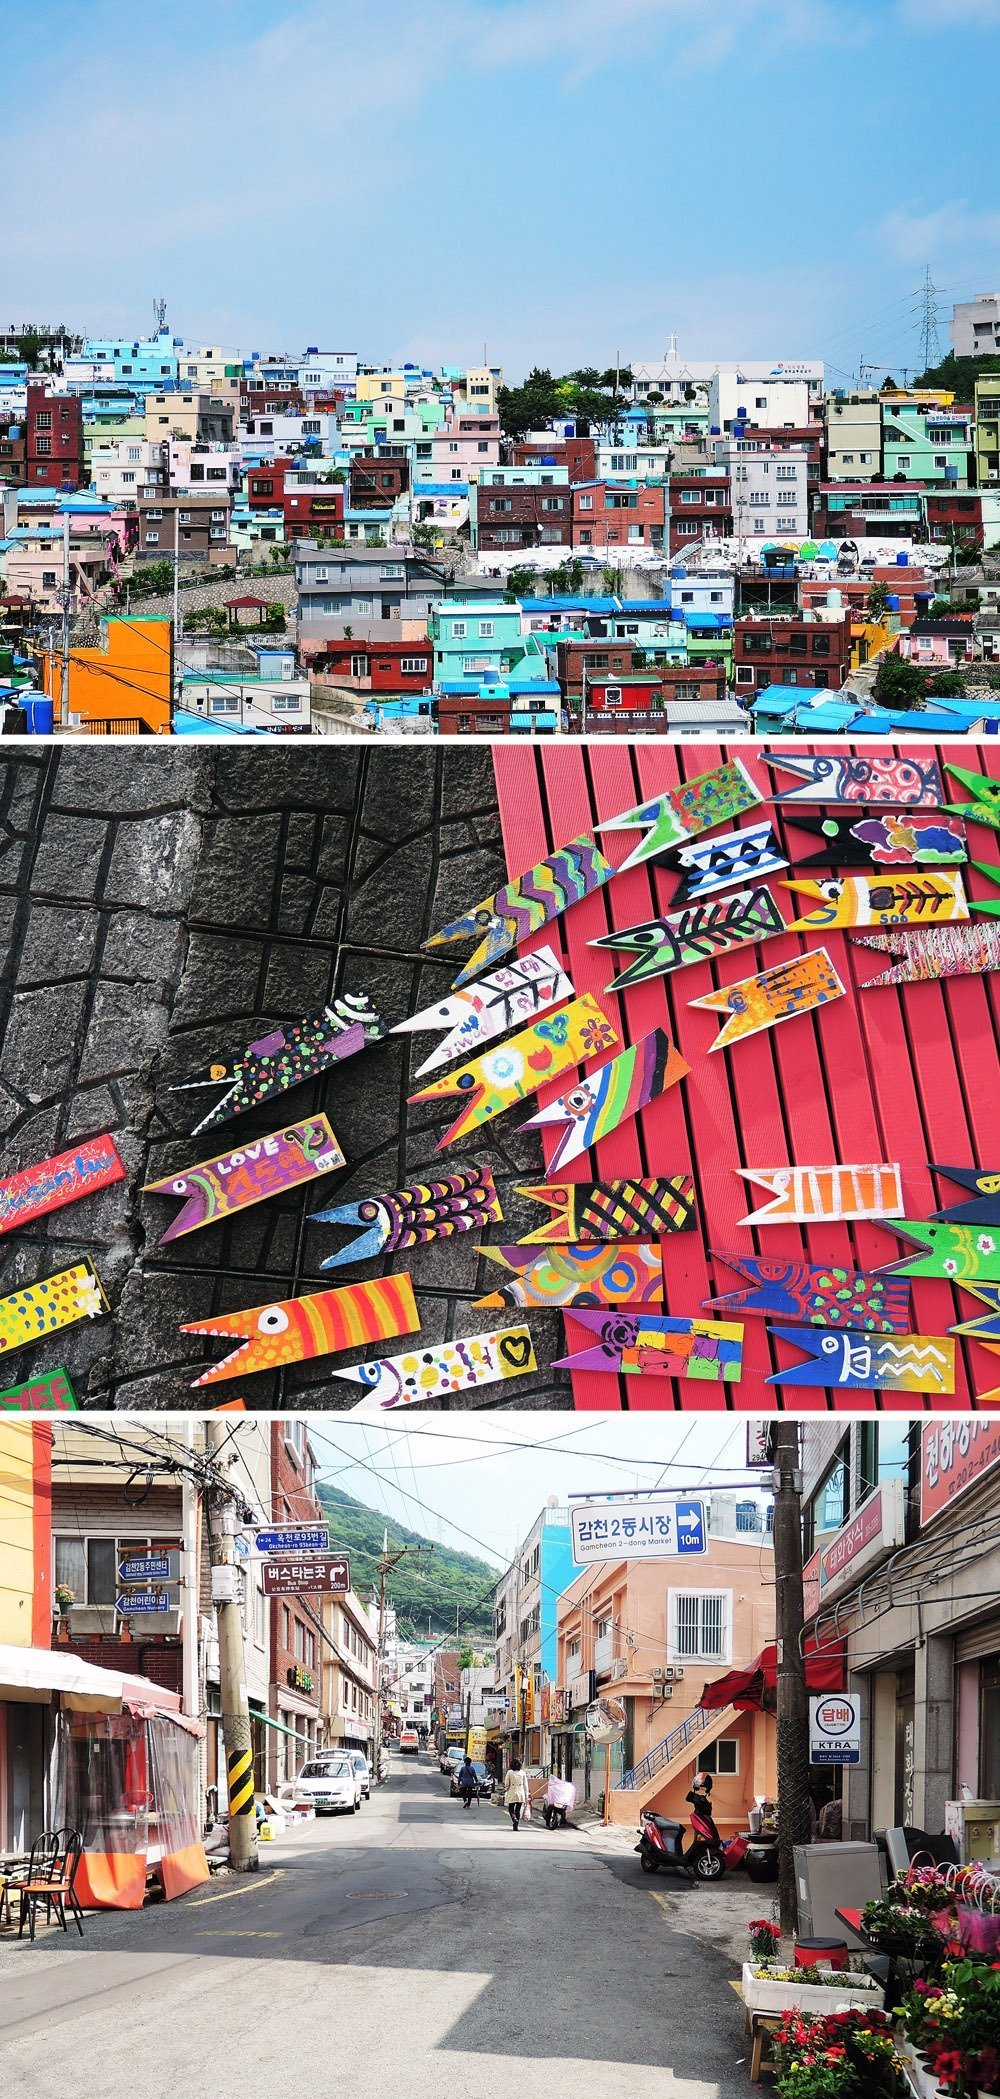 Visit Gamcheon Cultural Village, Busan's artsy district filled with colorful houses, art shops, and cafés with fantastic views. It's every artsy traveler's dream come true! Click through for a detailed guide on how to visit Busan in 3 days.